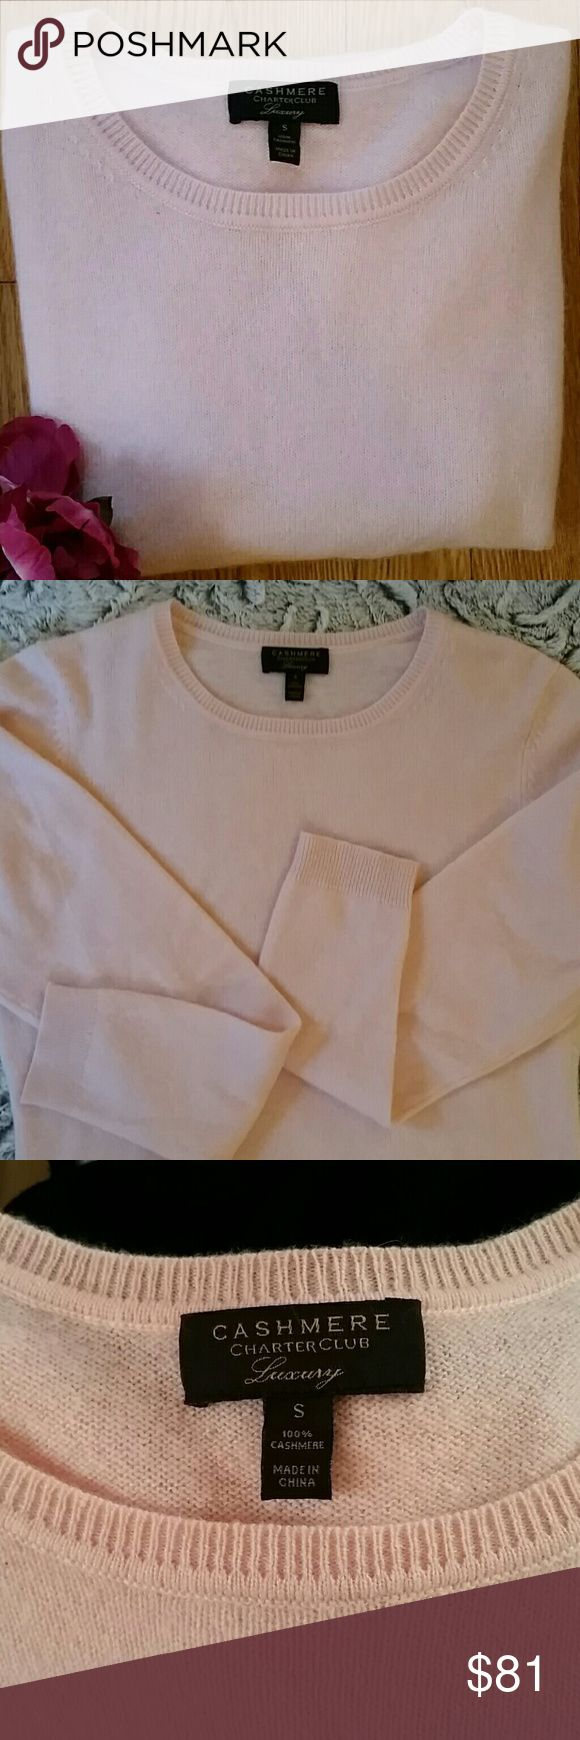 NWOT Charter Club 100% Cashmere Sweater Sooooo soft! The color shown is true to the actual color. Can you imagine how cute you'll look wearing this little number? Own it! Charter Club Sweaters